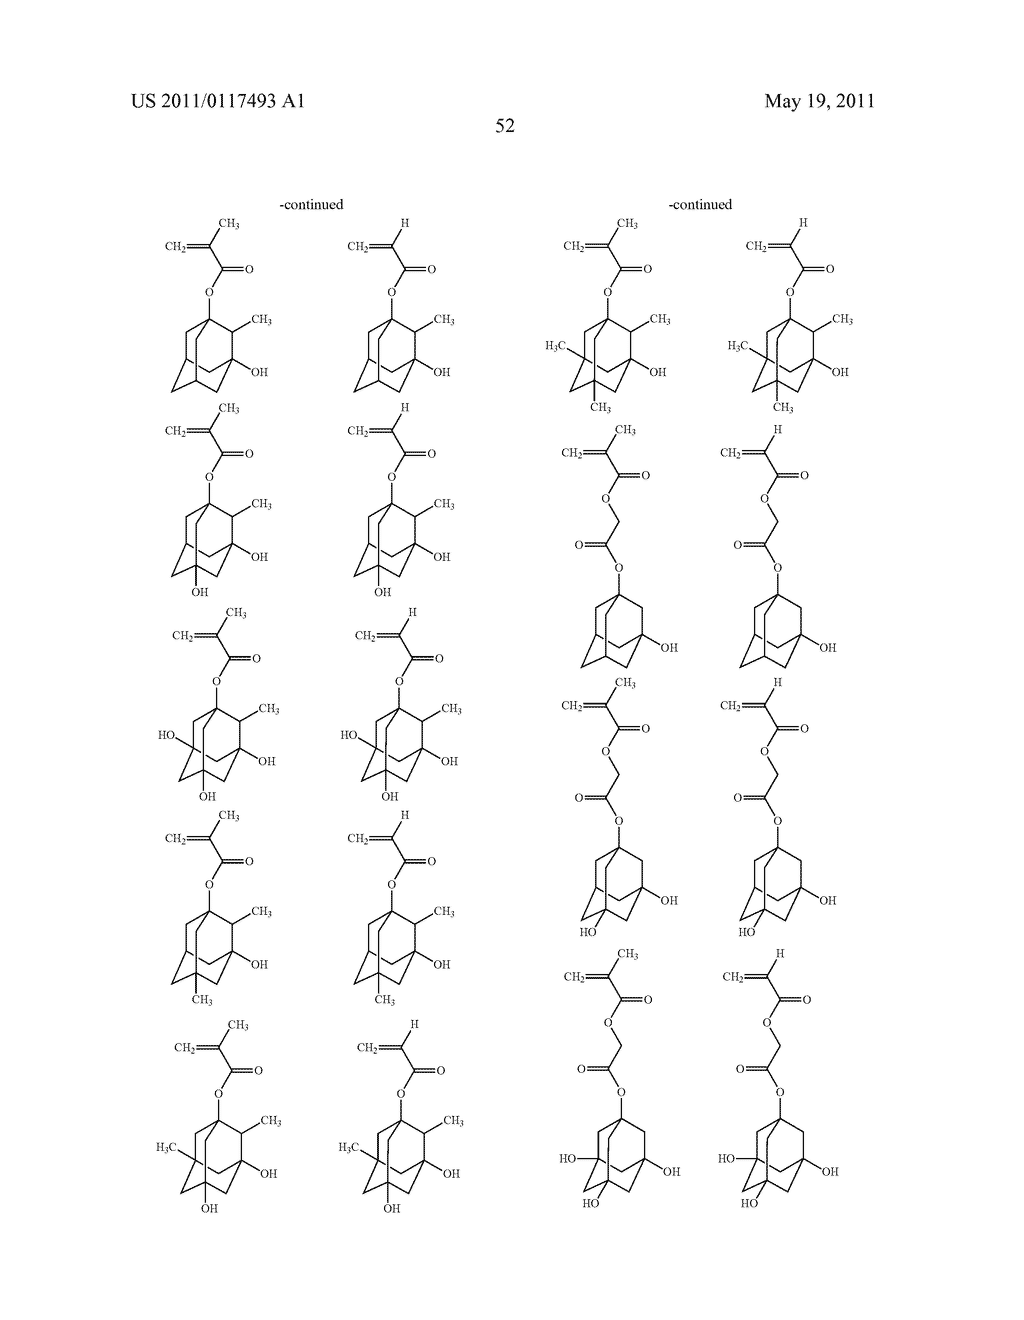 SALT AND PHOTORESIST COMPOSITION CONTAINING THE SAME - diagram, schematic, and image 53